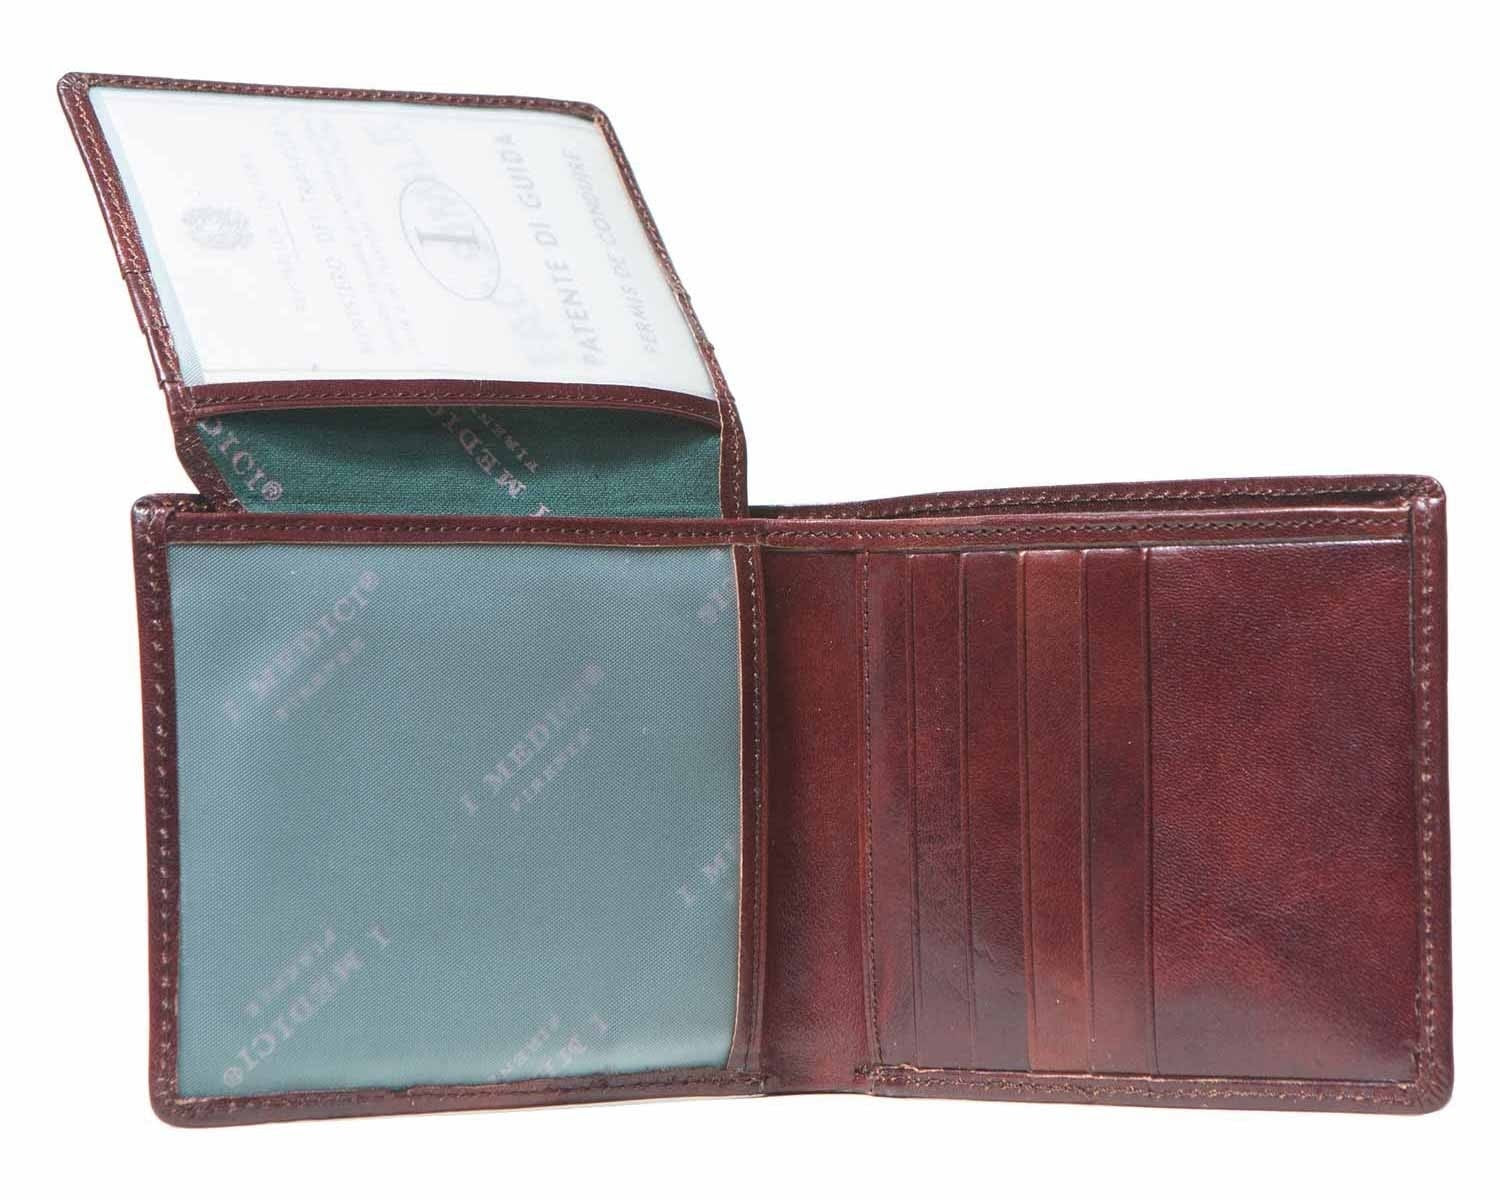 Consider the Compartments of Your Wallet